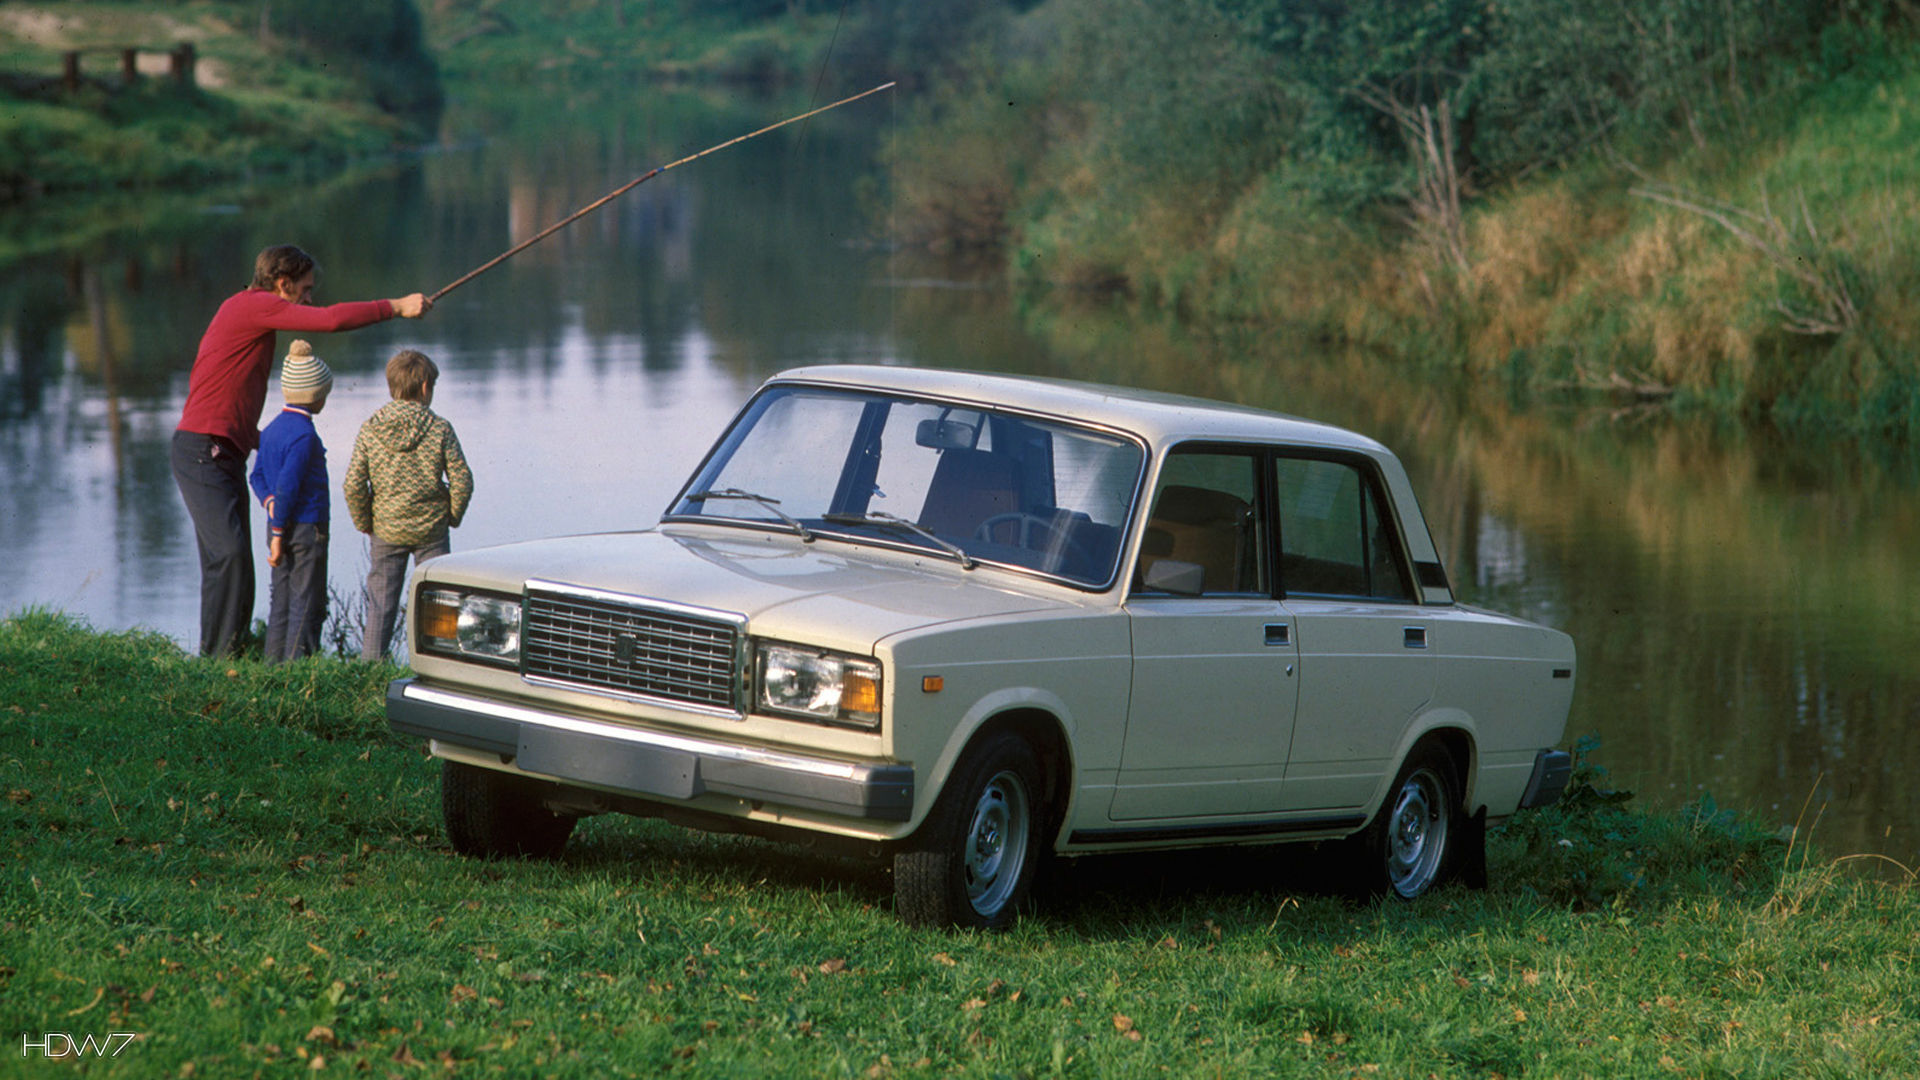 vaz 2107 1982 car hd wallpaper